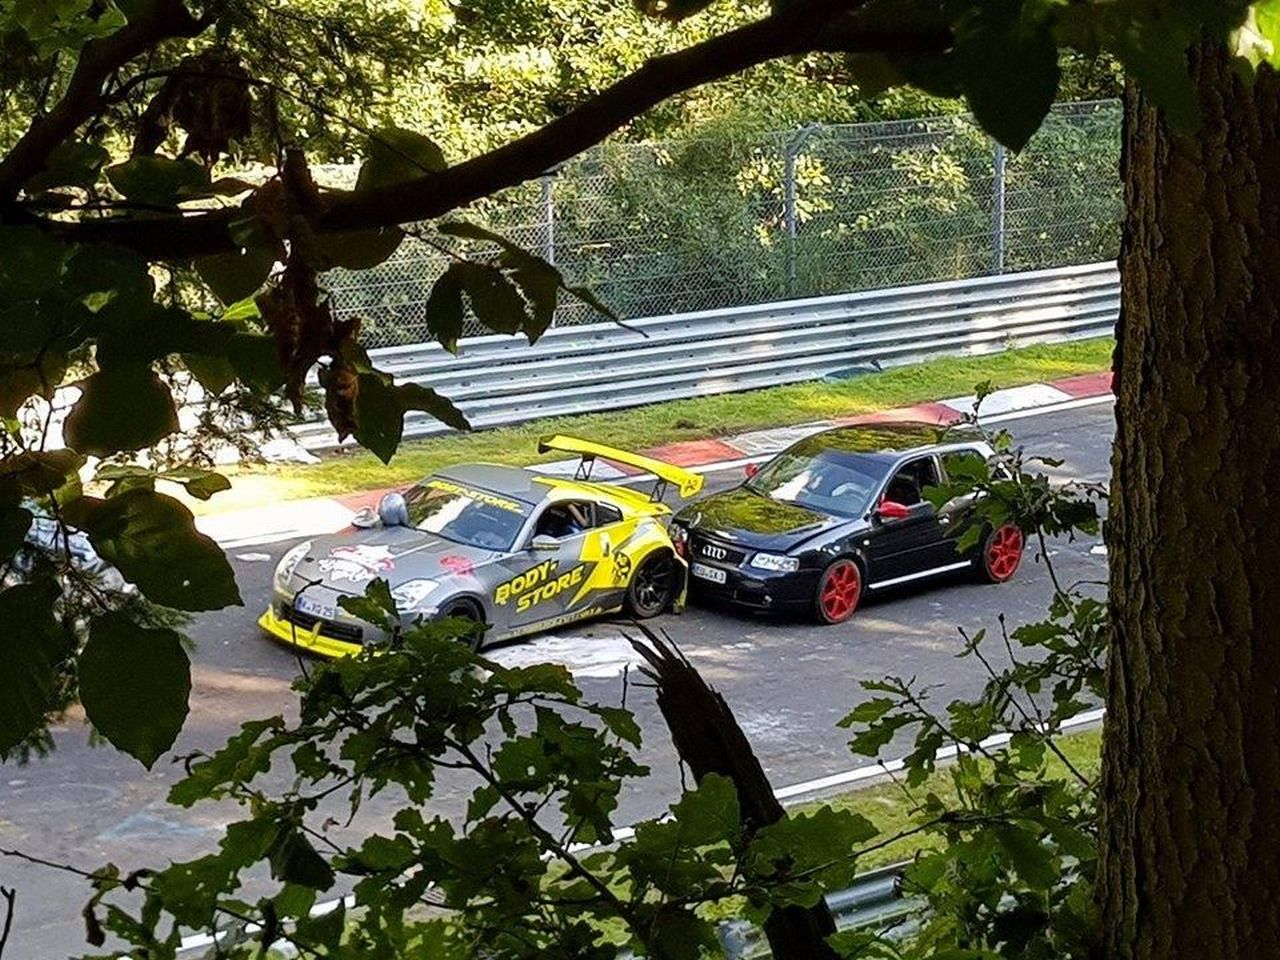 Nurburgring crash august 2017 (9)